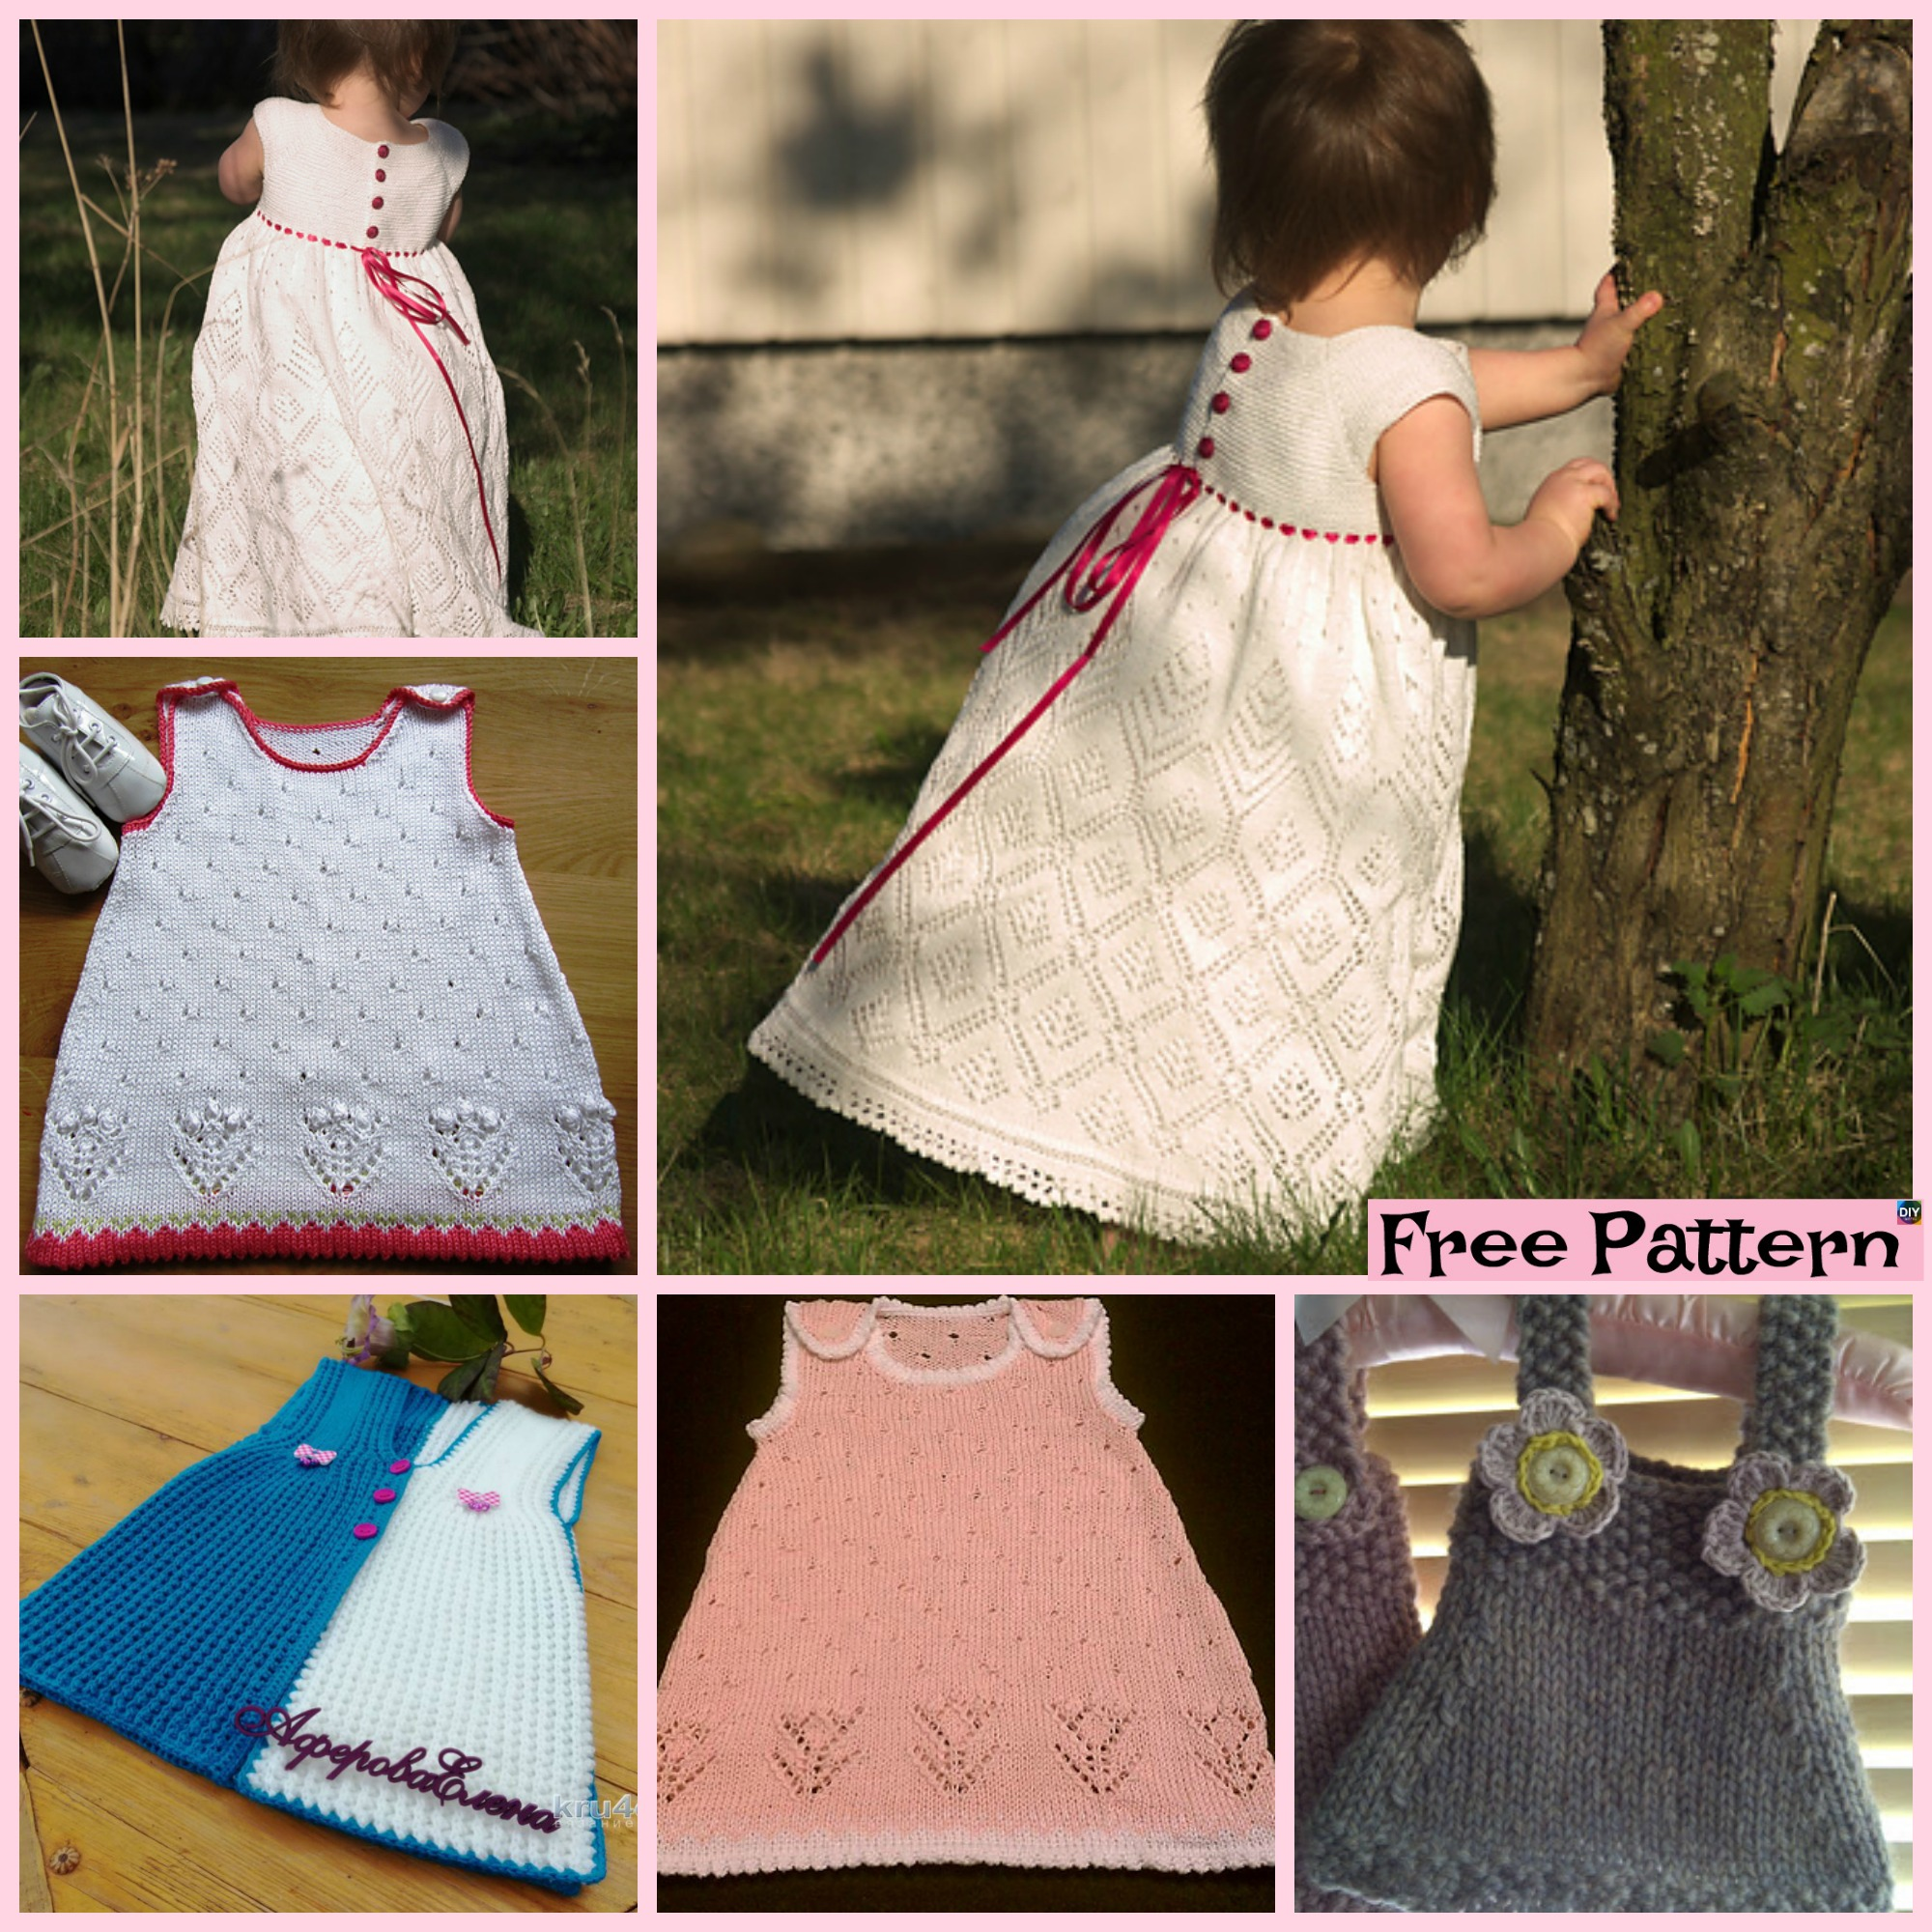 10 Most Unique Knitting Baby Dress - Free Patterns - DIY 4 EVER